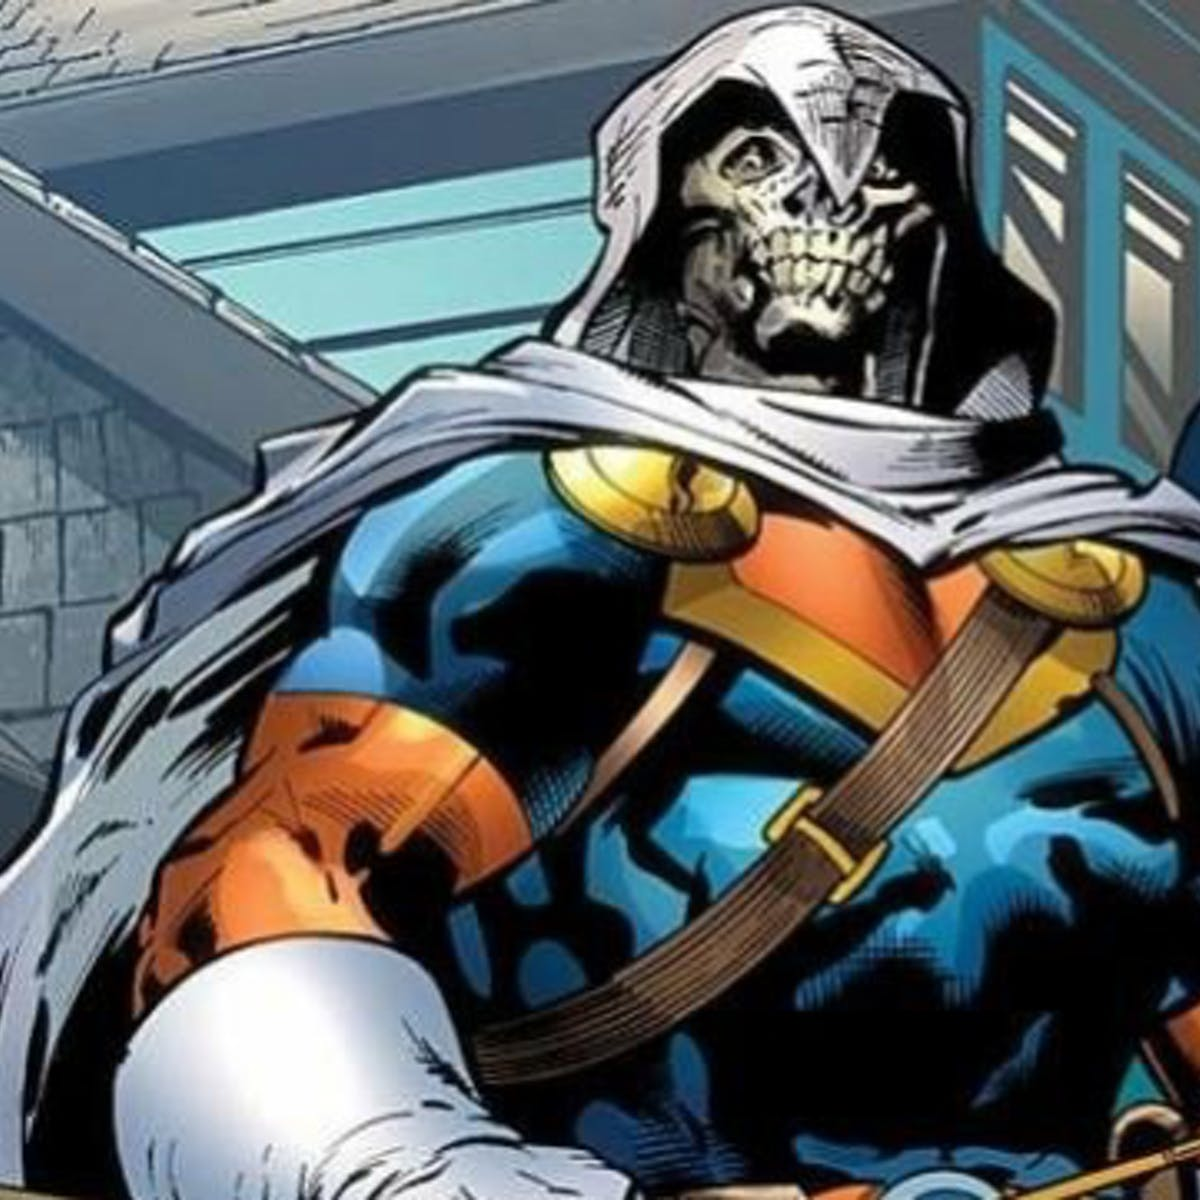 'Black Widow' leaks allegedly reveal Taskmaster's shocking true identity